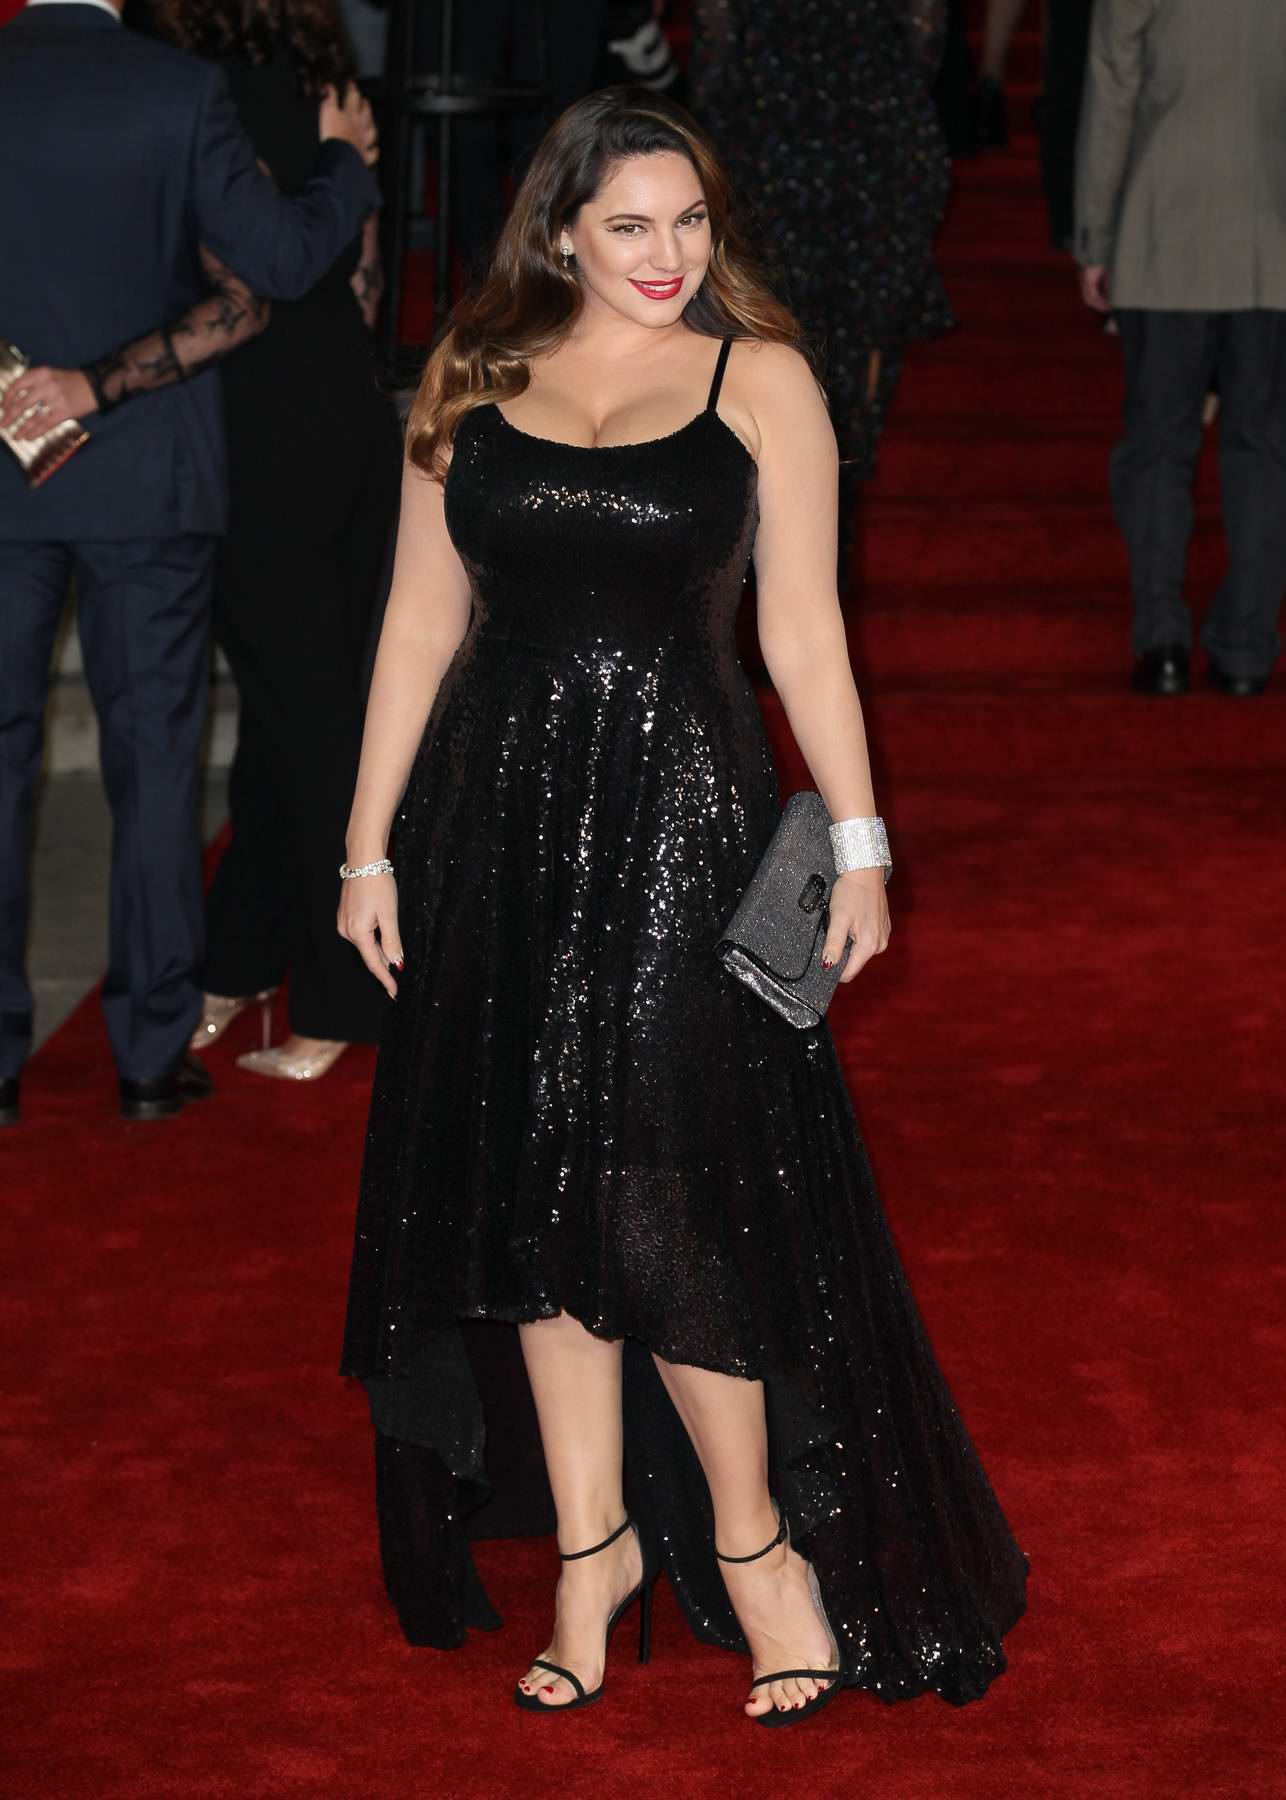 Kelly Brook attends the premiere of 'Murder on the Orient Express' in London